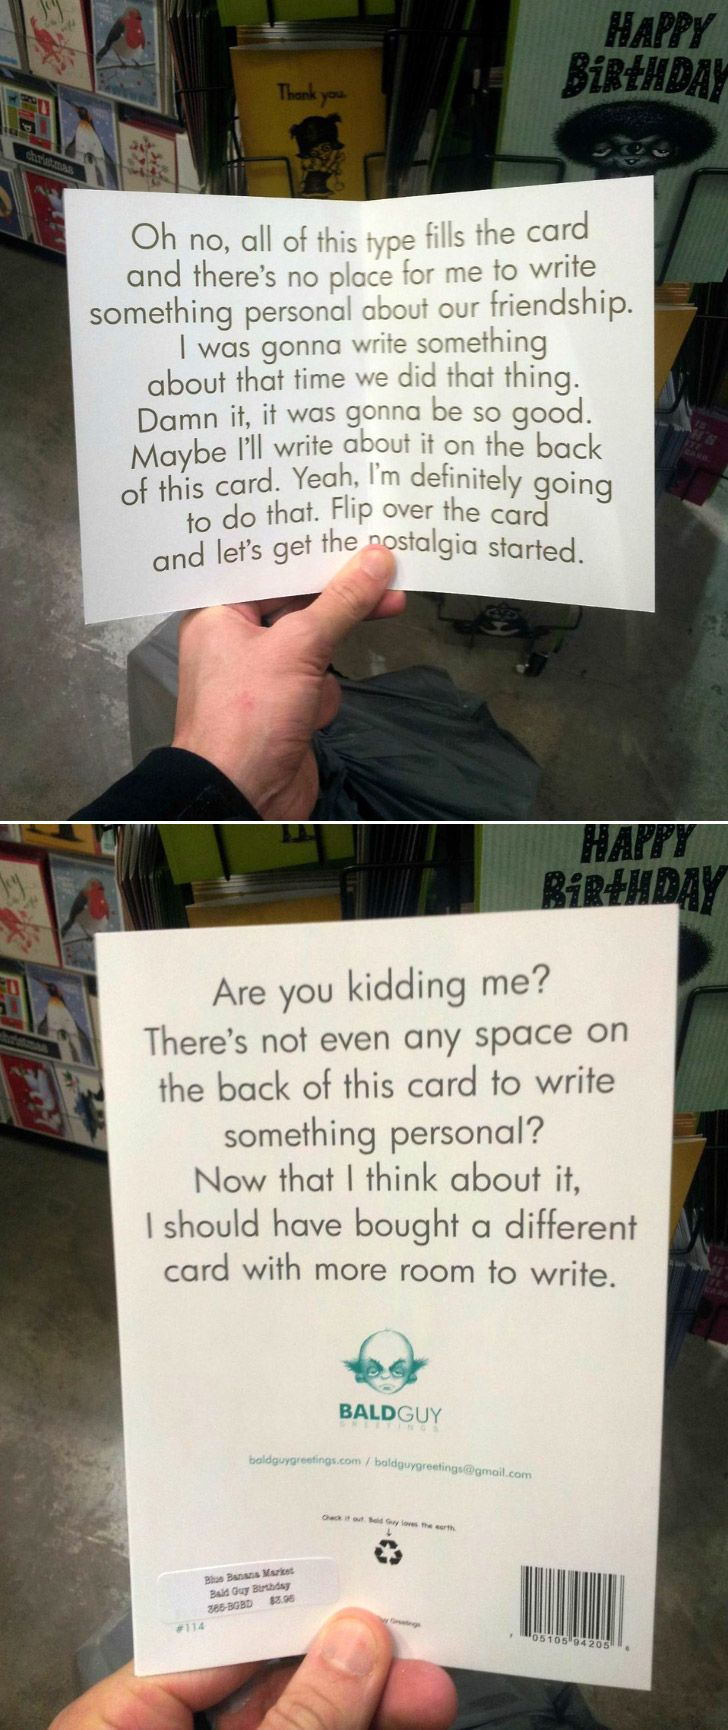 I like this card, even though I like to write novel like paragraphs in cards and stuff like this irritates me. Ironic.